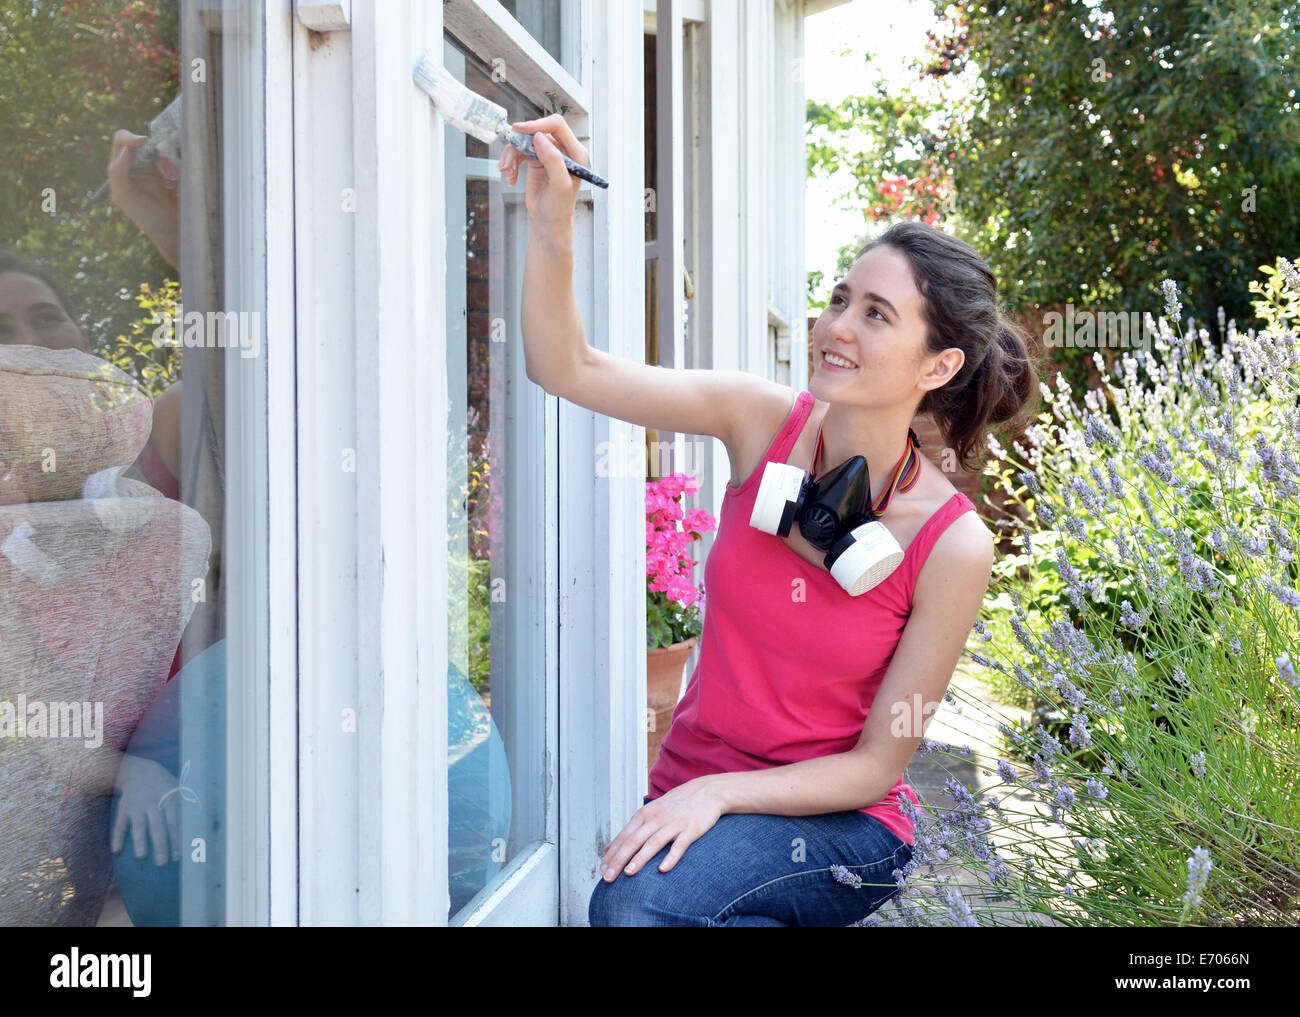 Young woman sitting painting house window - Stock Image